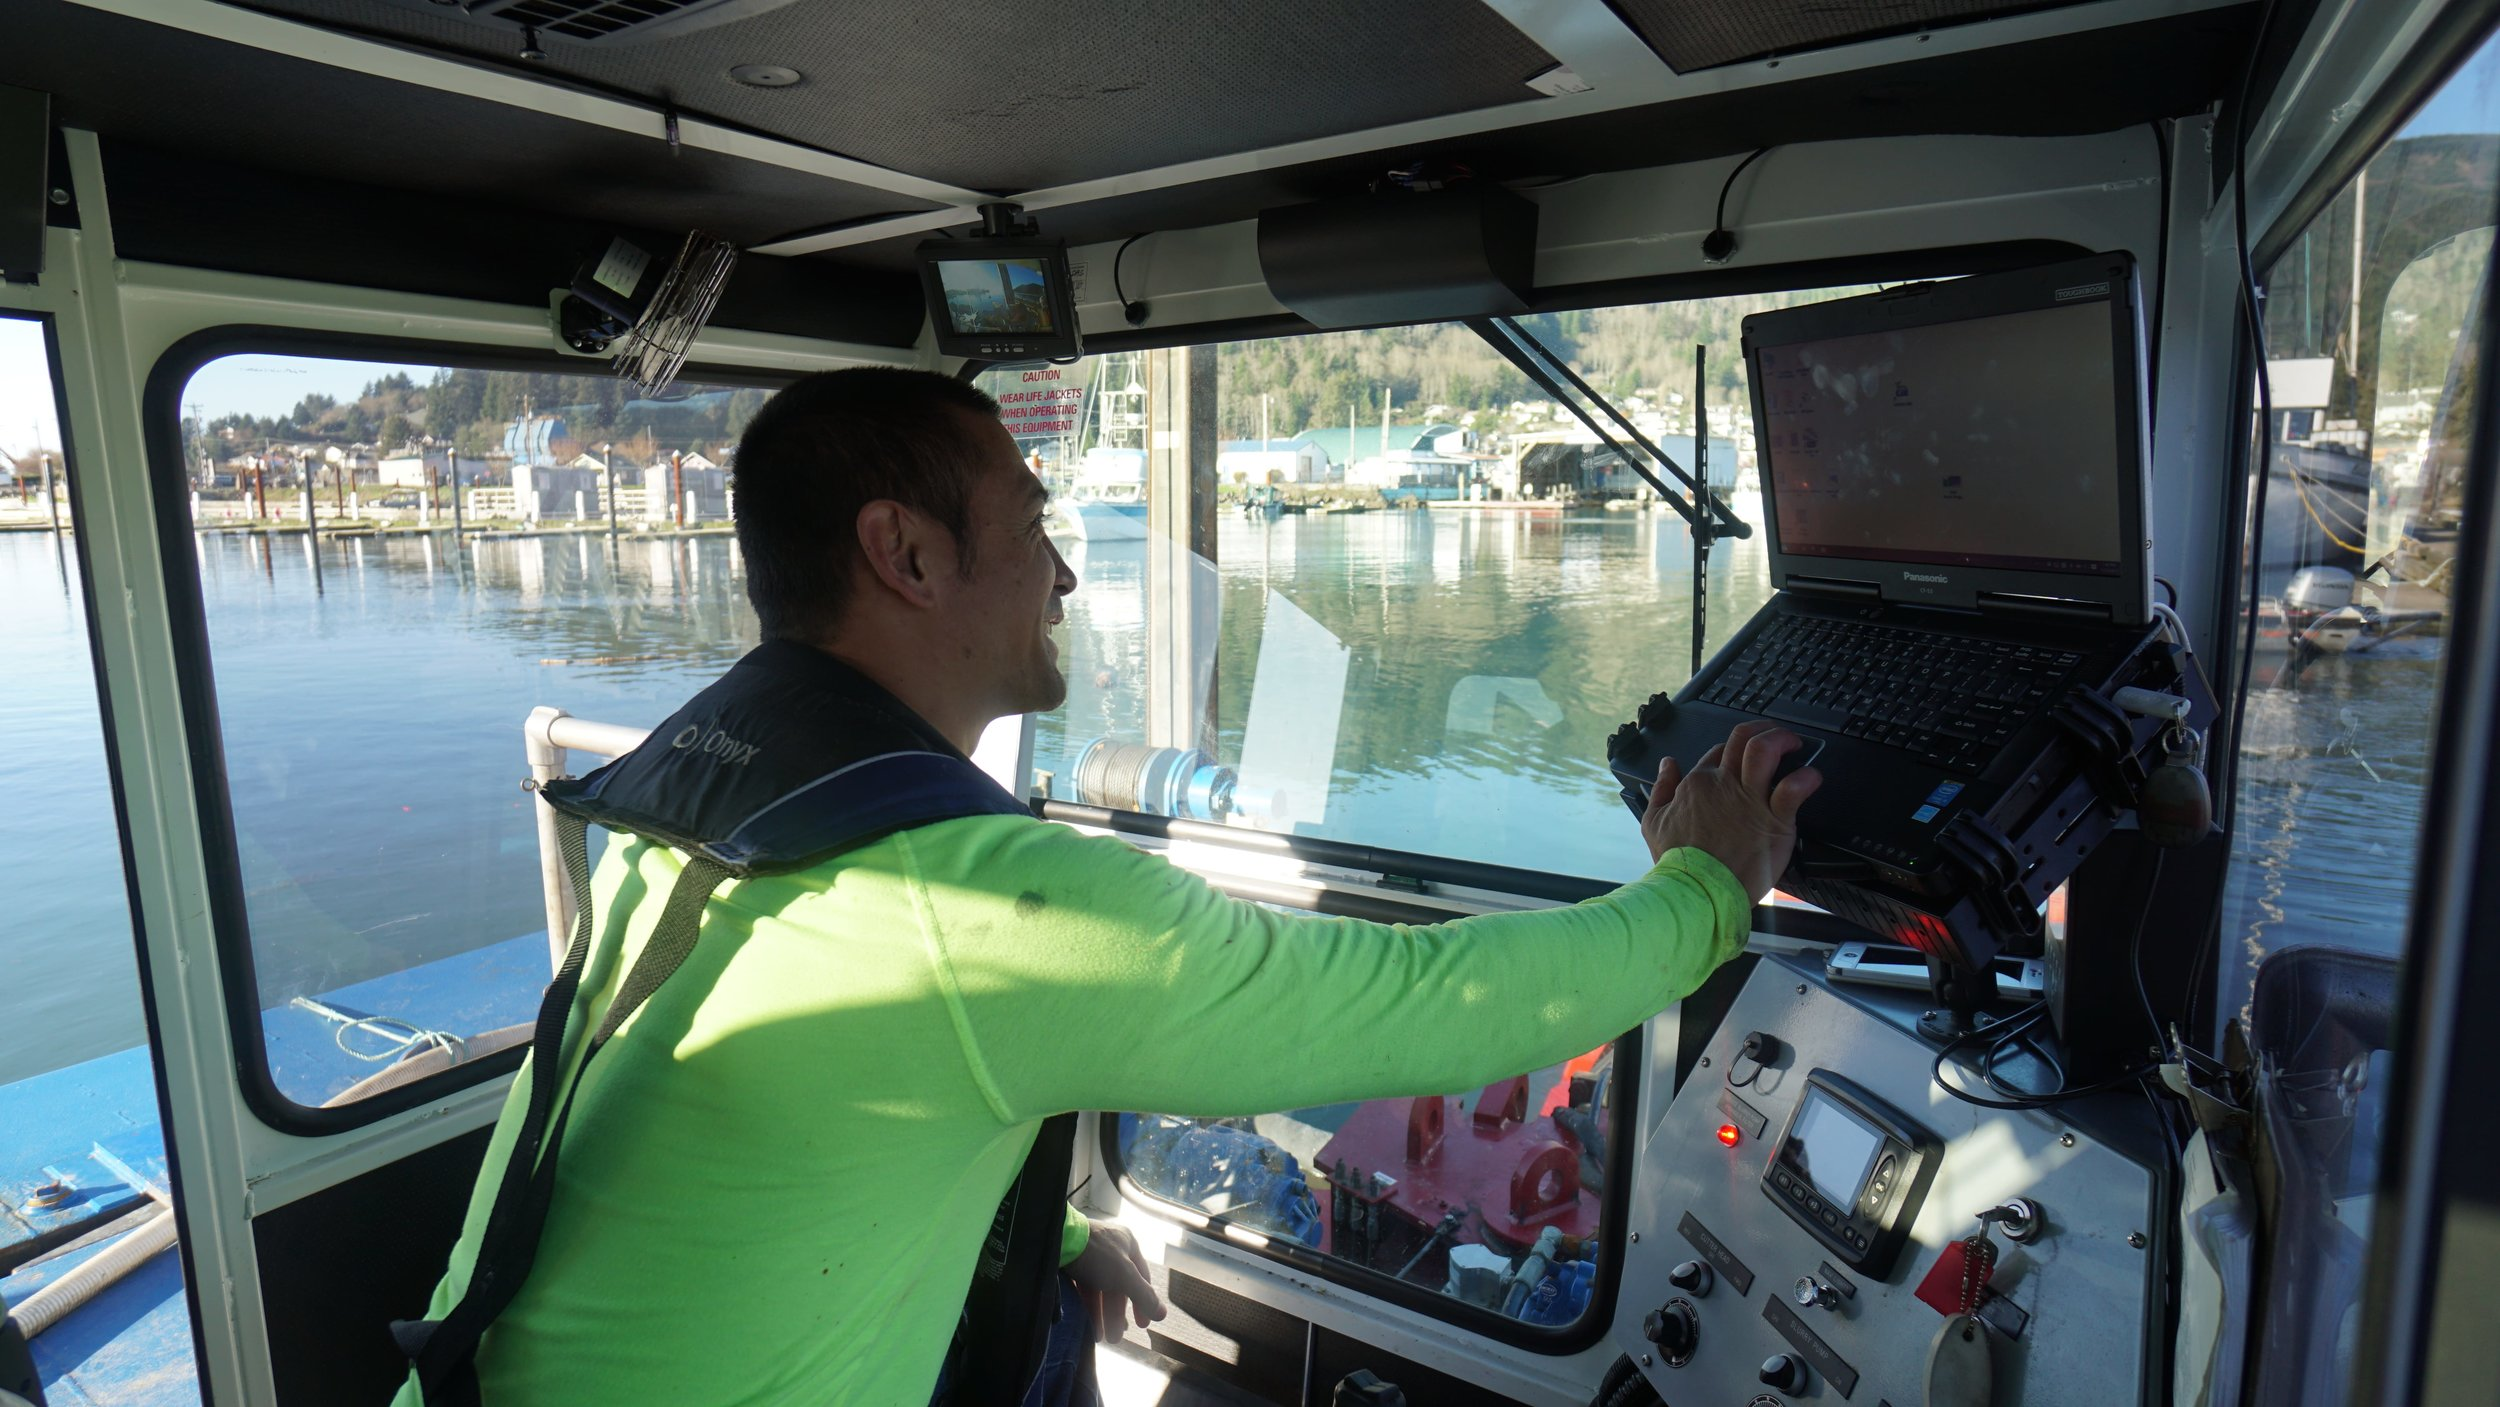 Operating the dredge